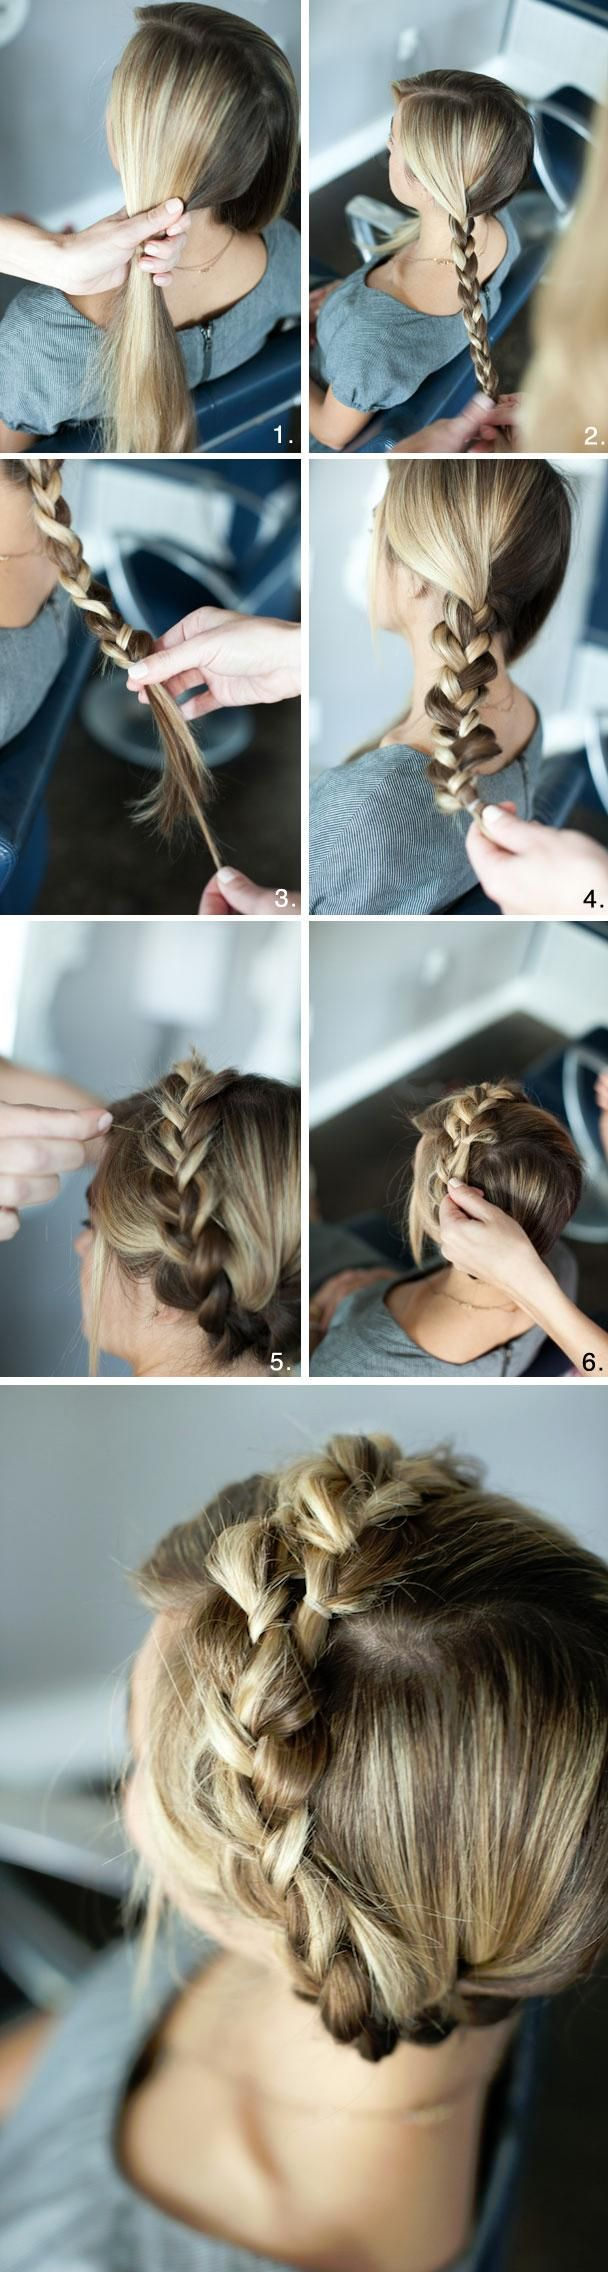 Braided Crown Tutorial...yeah only if my hair was longer than what it is and if i didnt have the layers in my hair!! darn it! :(